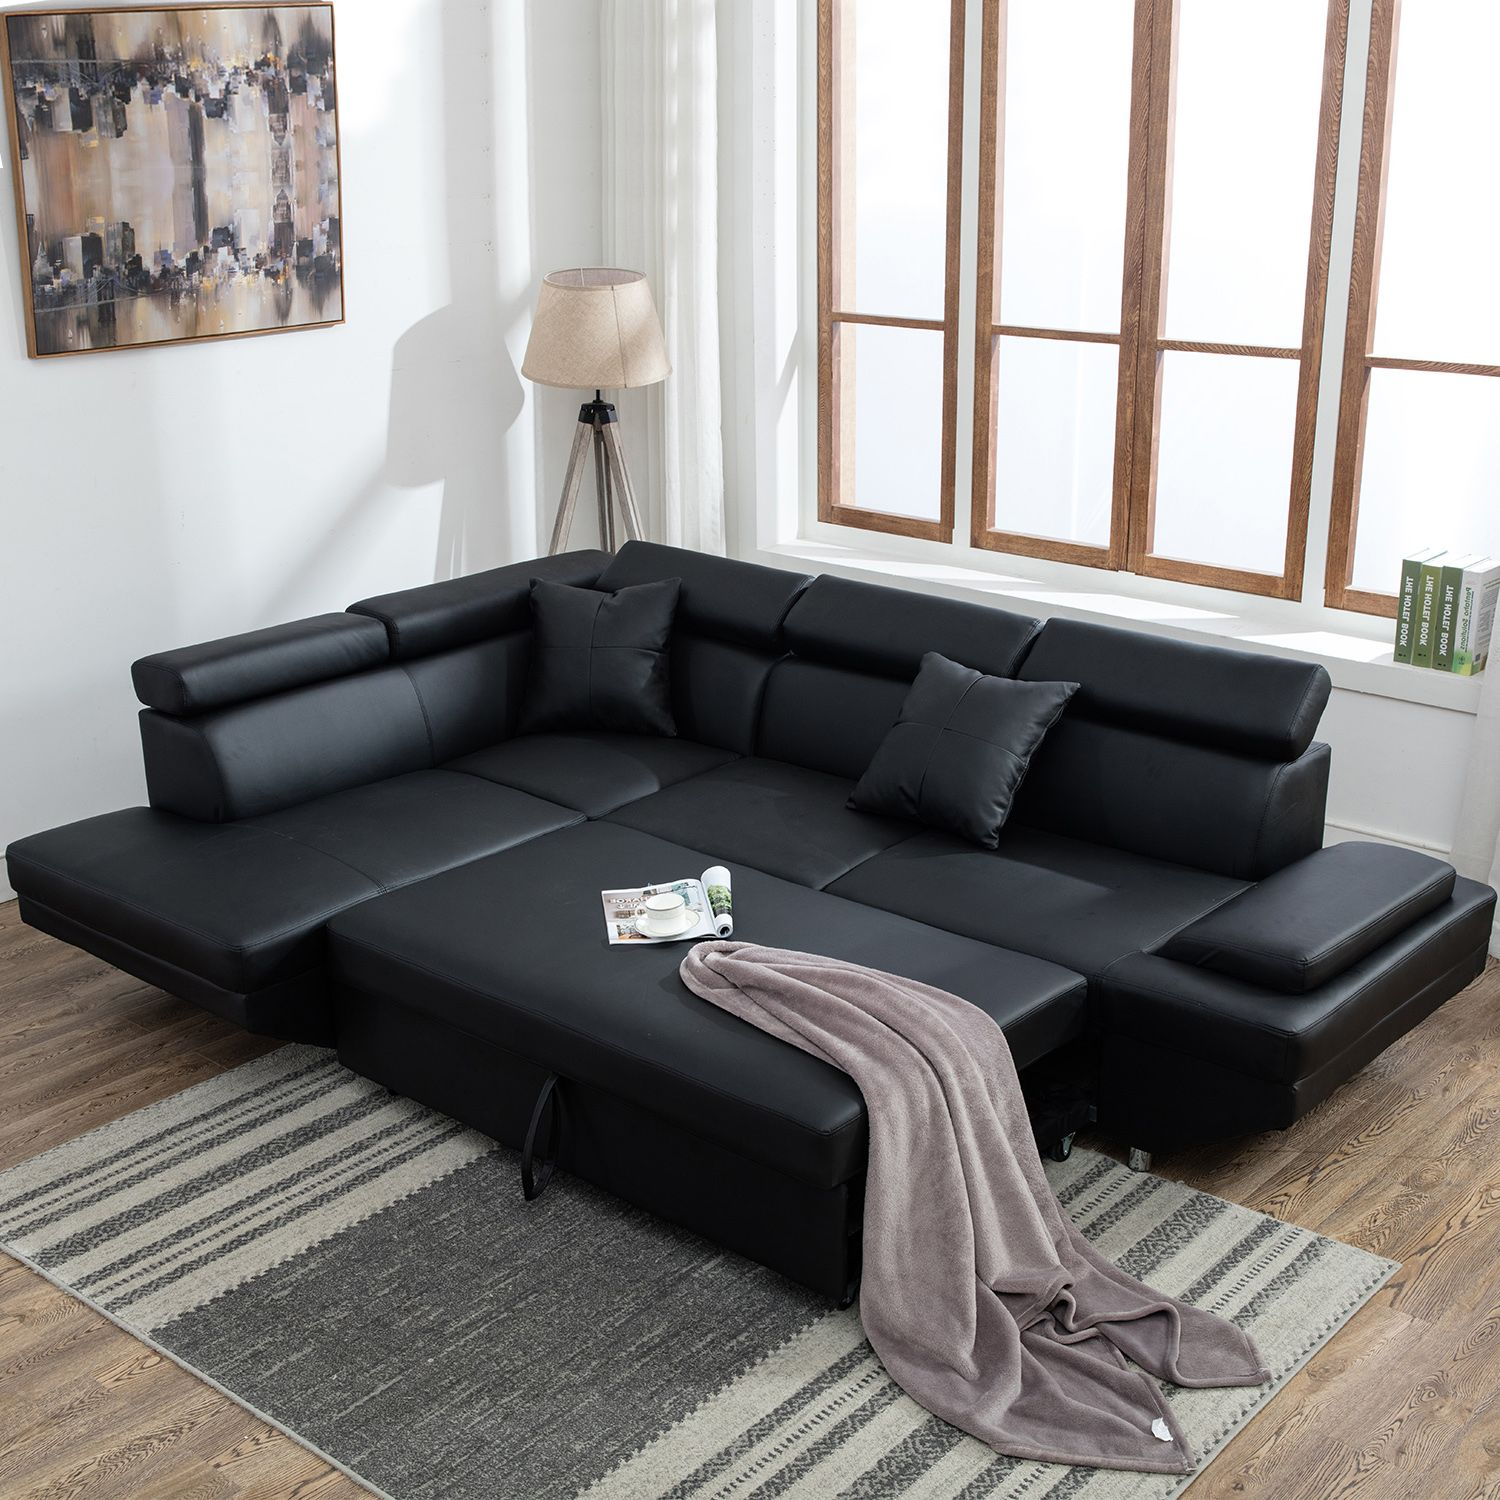 Contemporary Sectional Modern Sofa Bed Black With Functional Armrest Back L Walmart Com Sectional Sofas Living Room Futon Sofa Contemporary Sofa